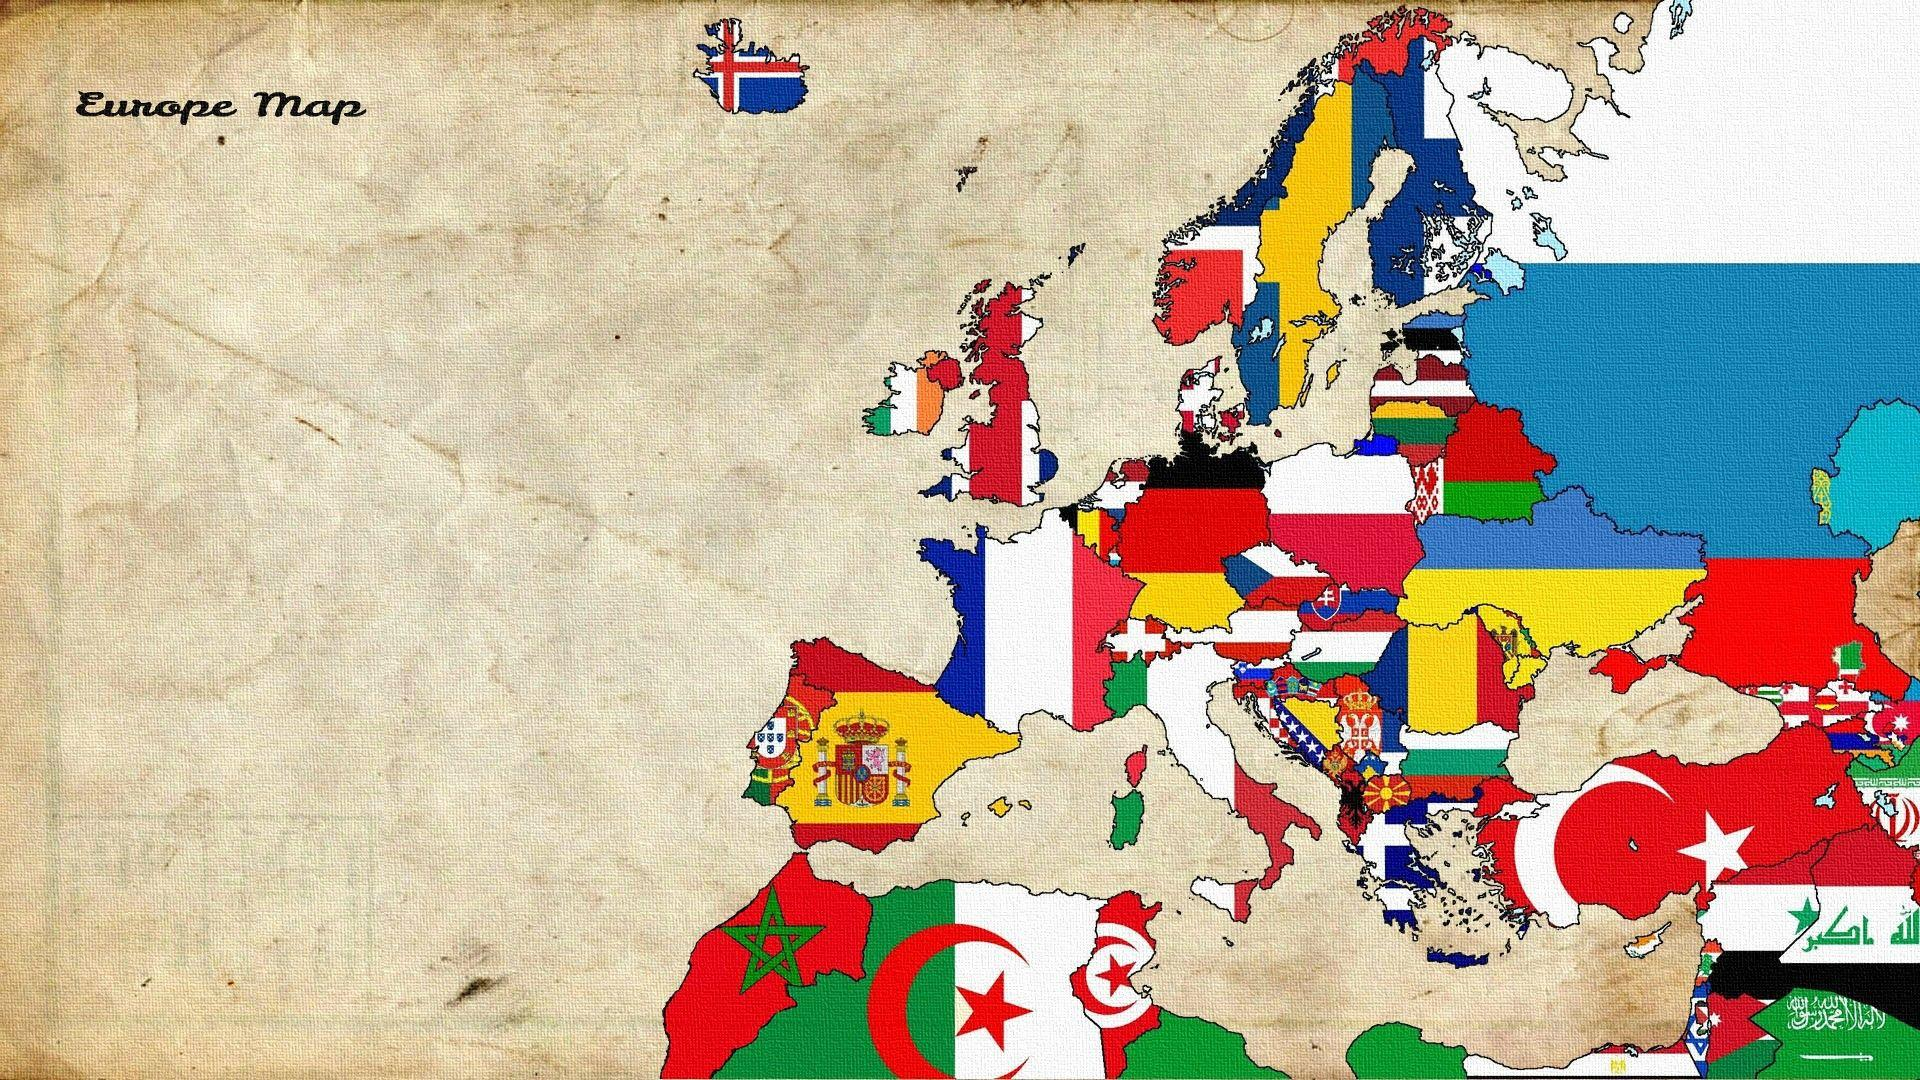 Wallpapers : illustration, collage, cartoon, flag, Europe, world